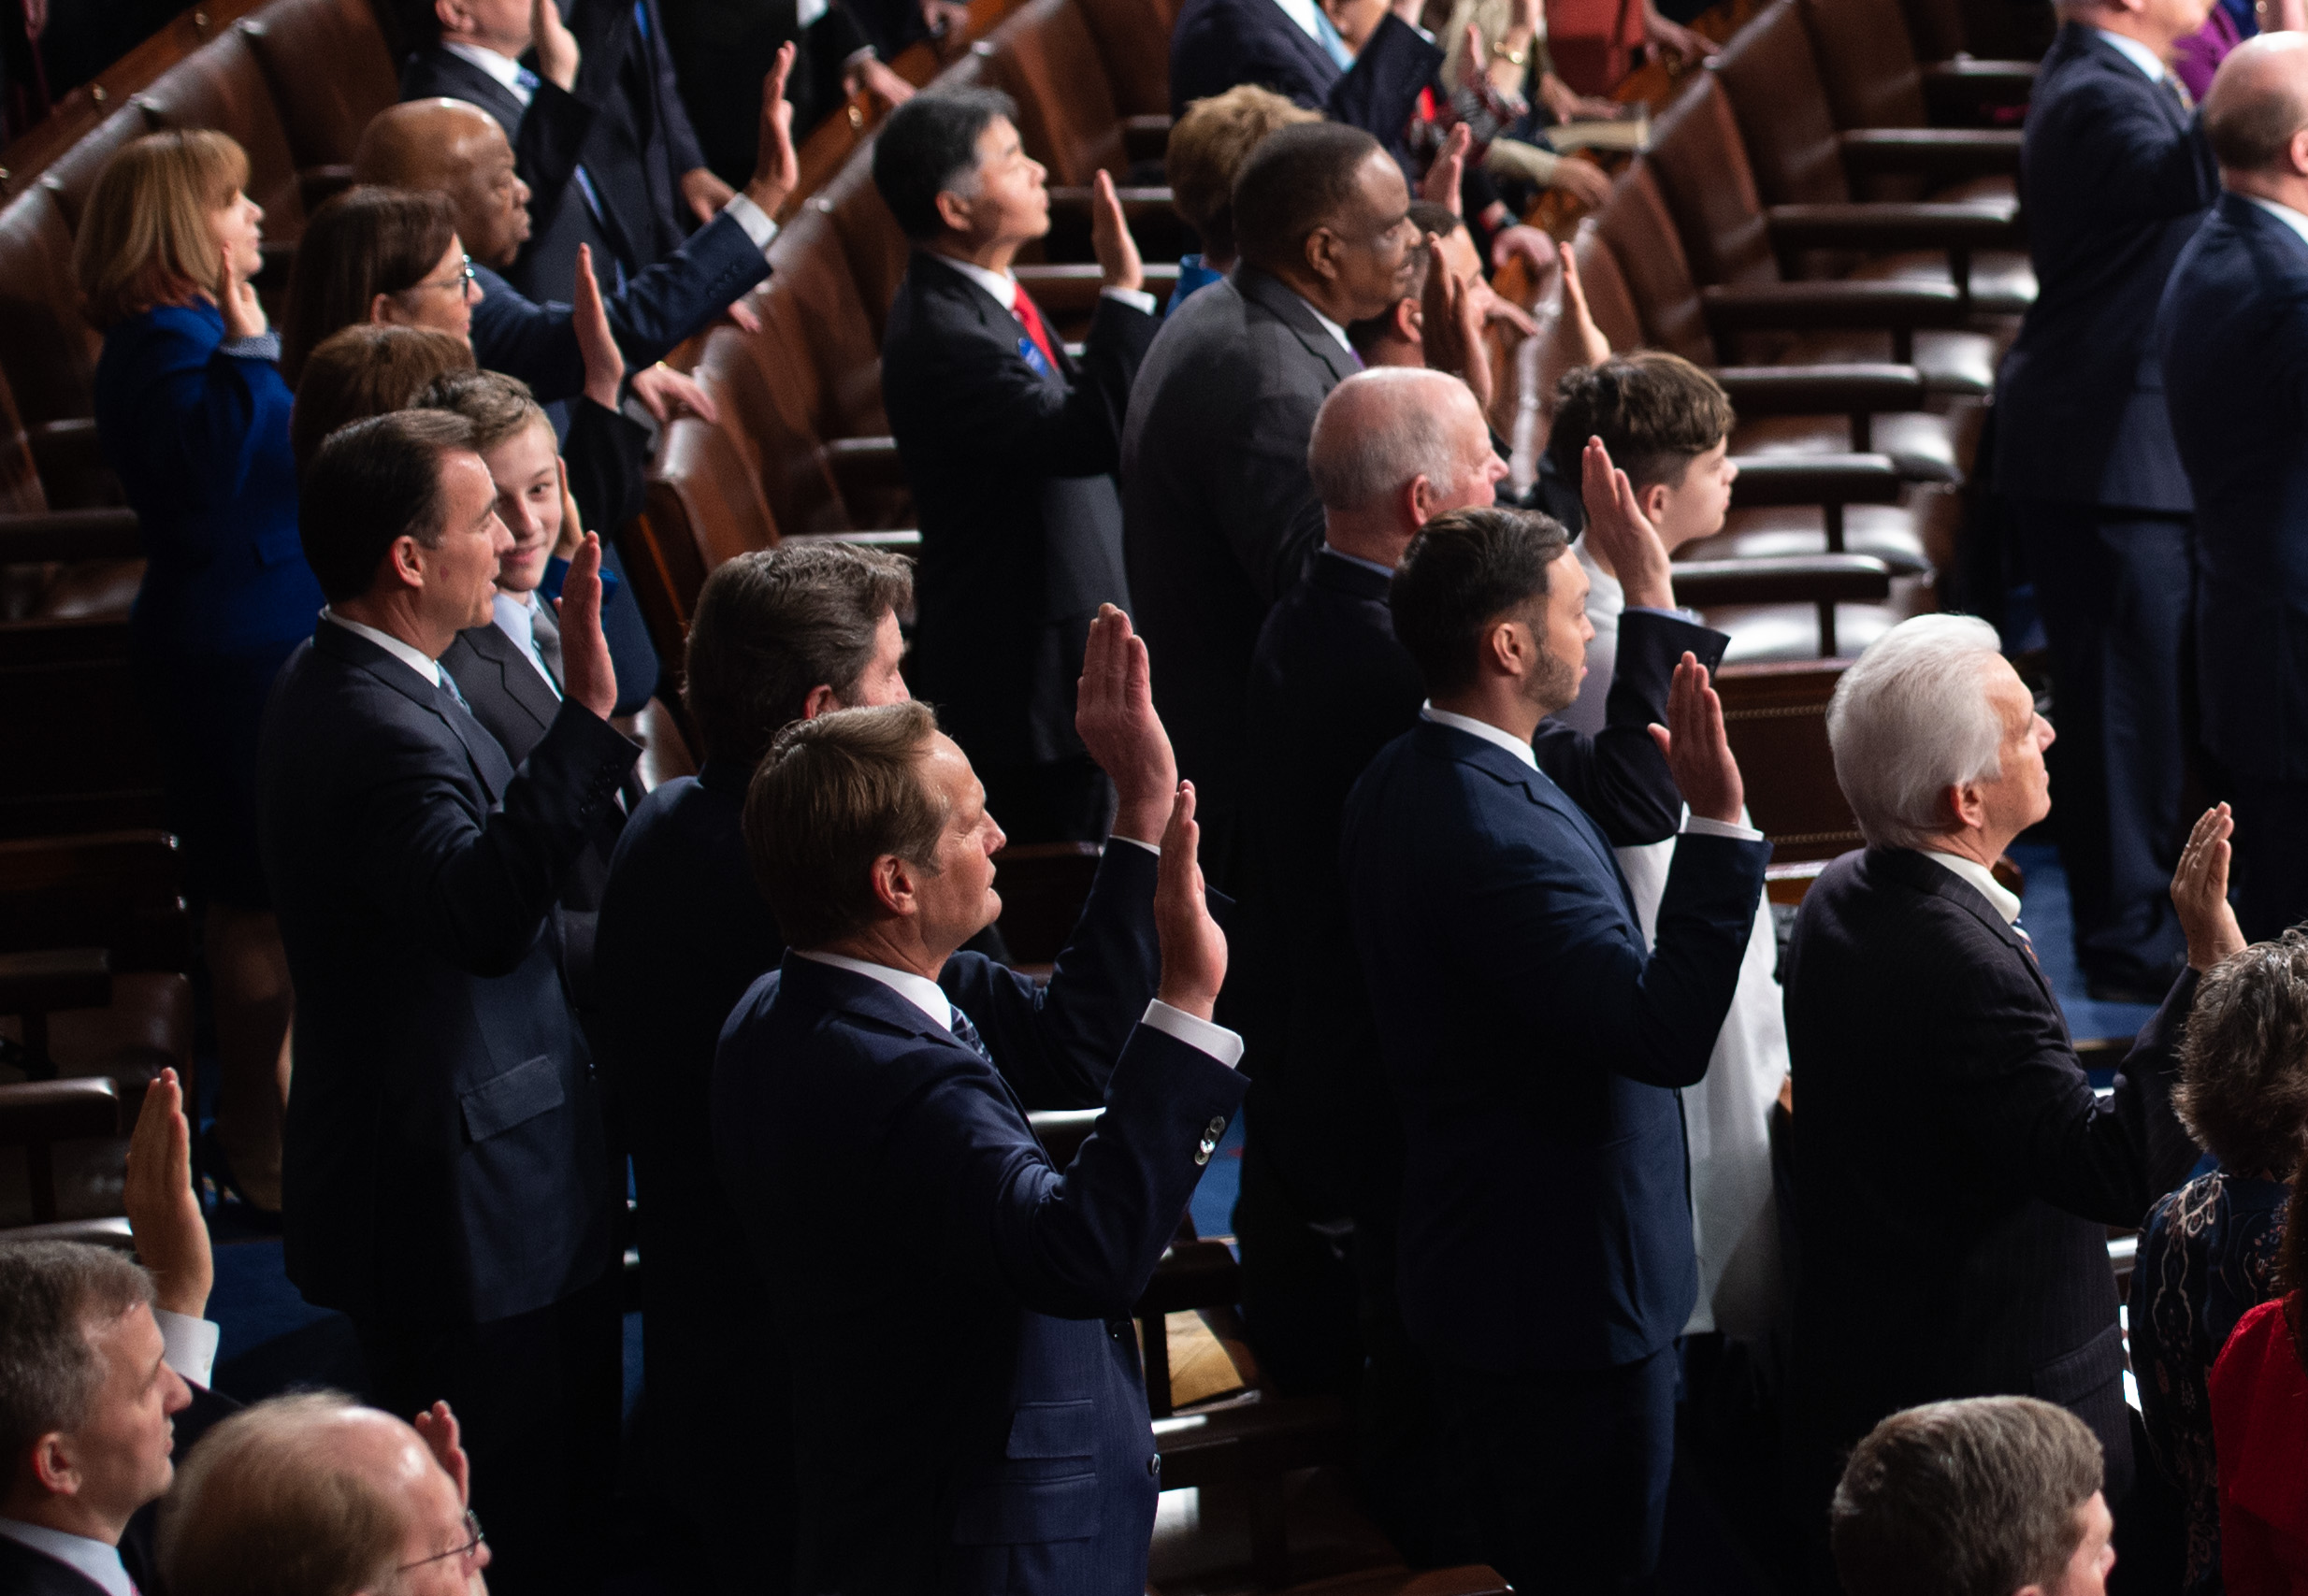 Members of the US House are sworn-in